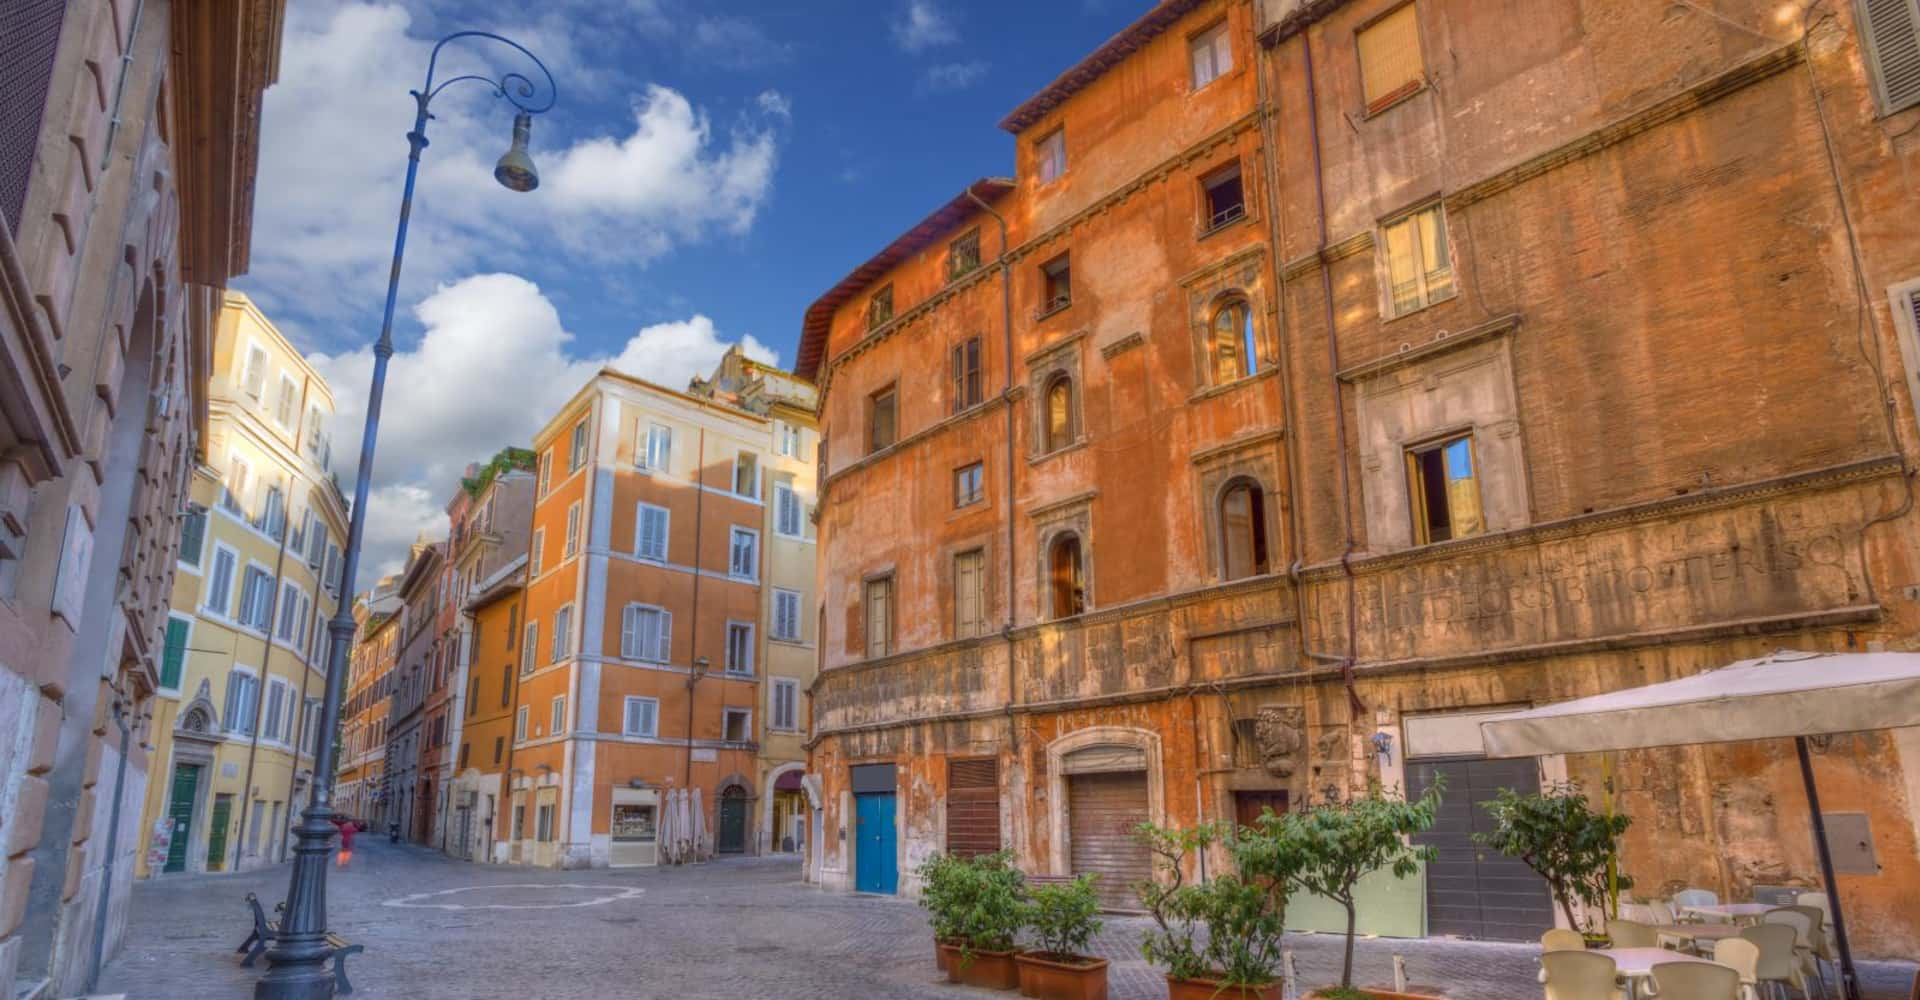 The Jewish Ghetto - The First Roma Arte